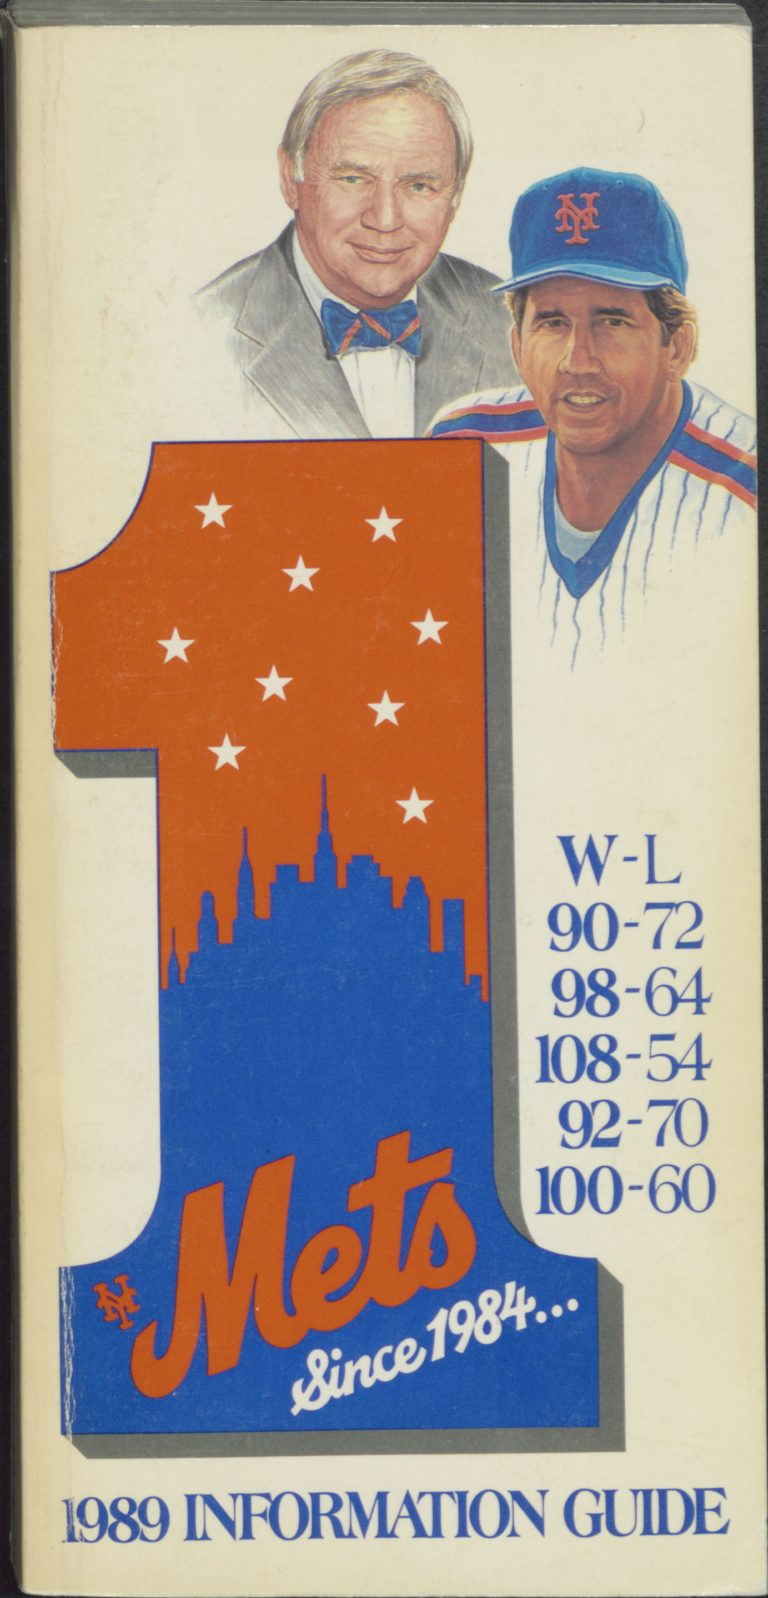 1989 New York Mets Information Guide